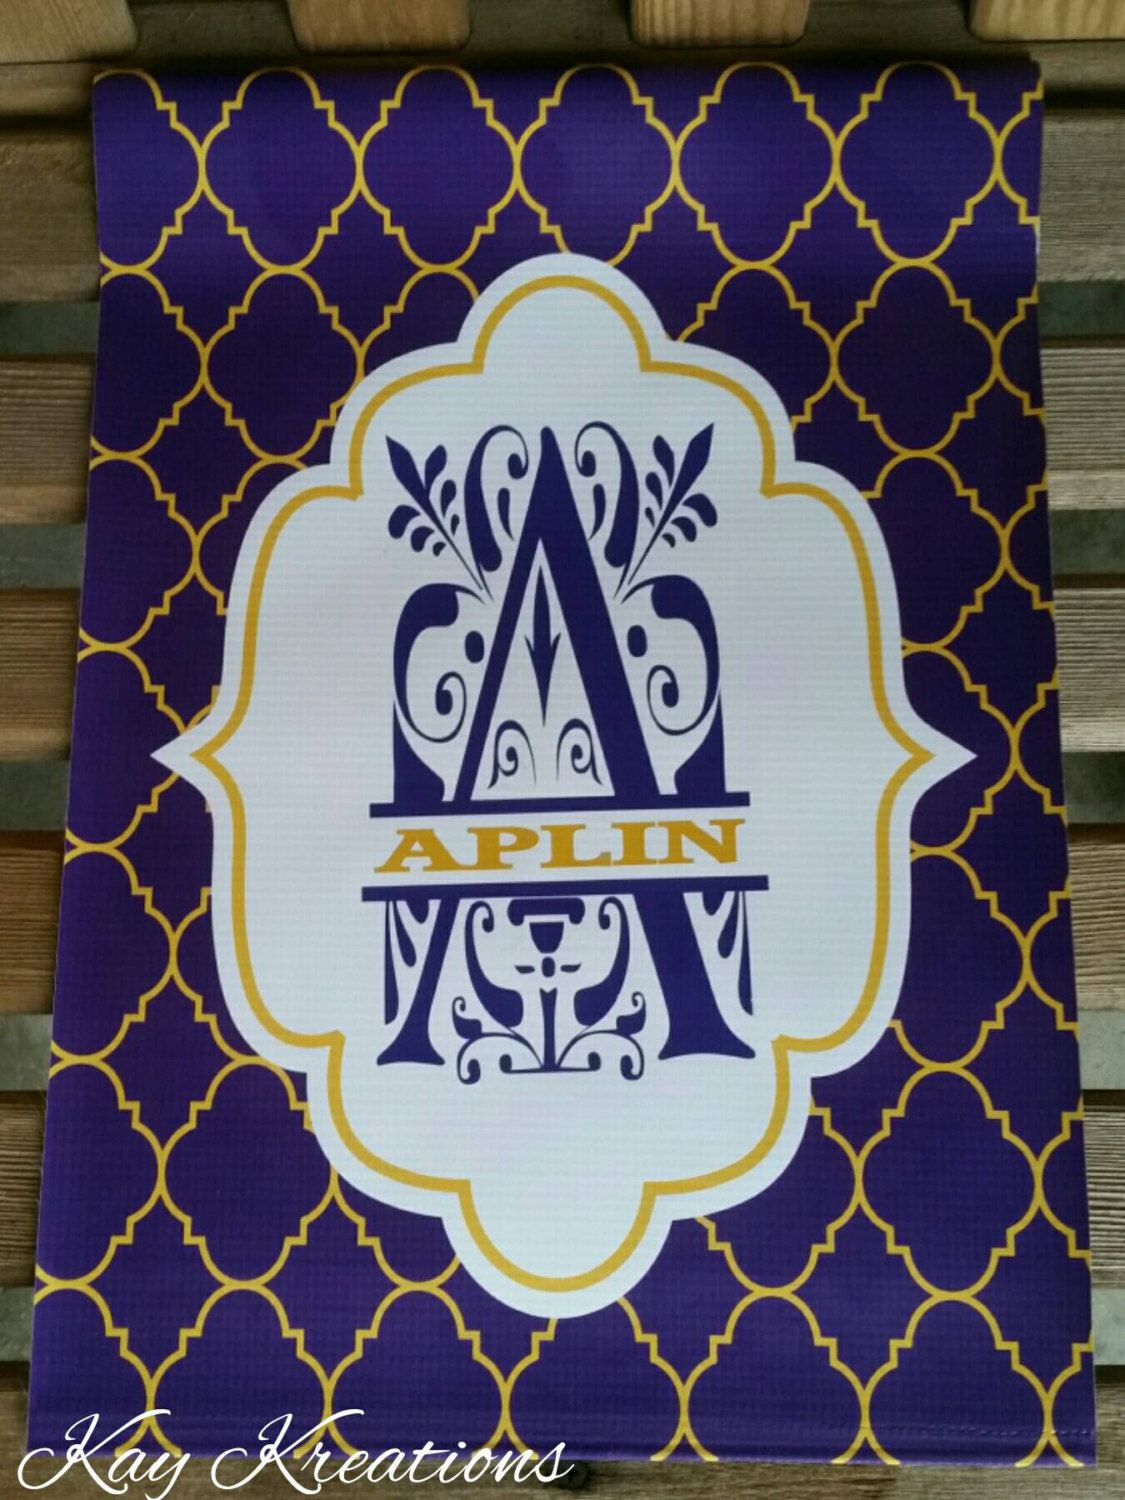 LSU Garden Flag   Yard House Flag   Home LSU Garden Flag   Personalized  Purple And Gold Flag   Personalized House Flag